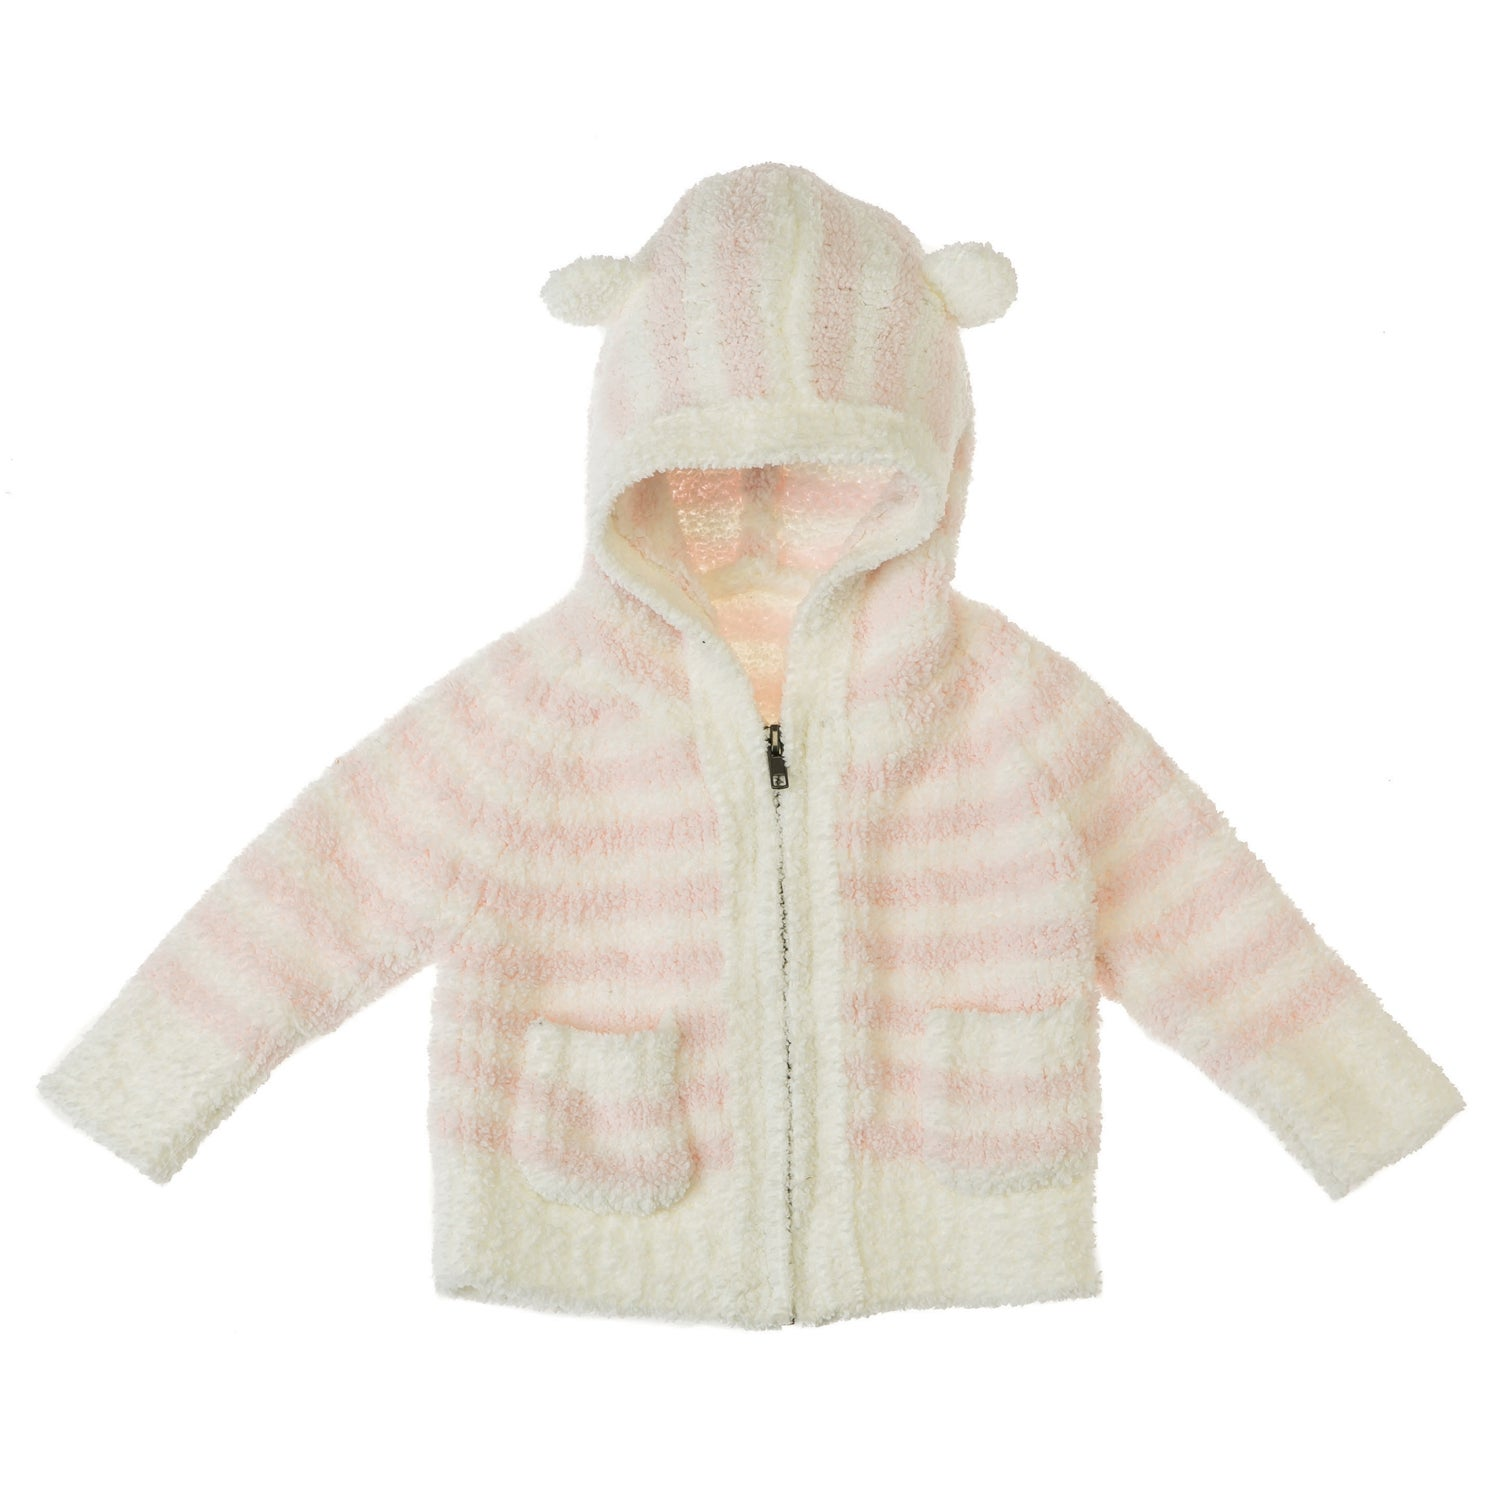 Vie Luxe Pink Striped Baby Hoodie